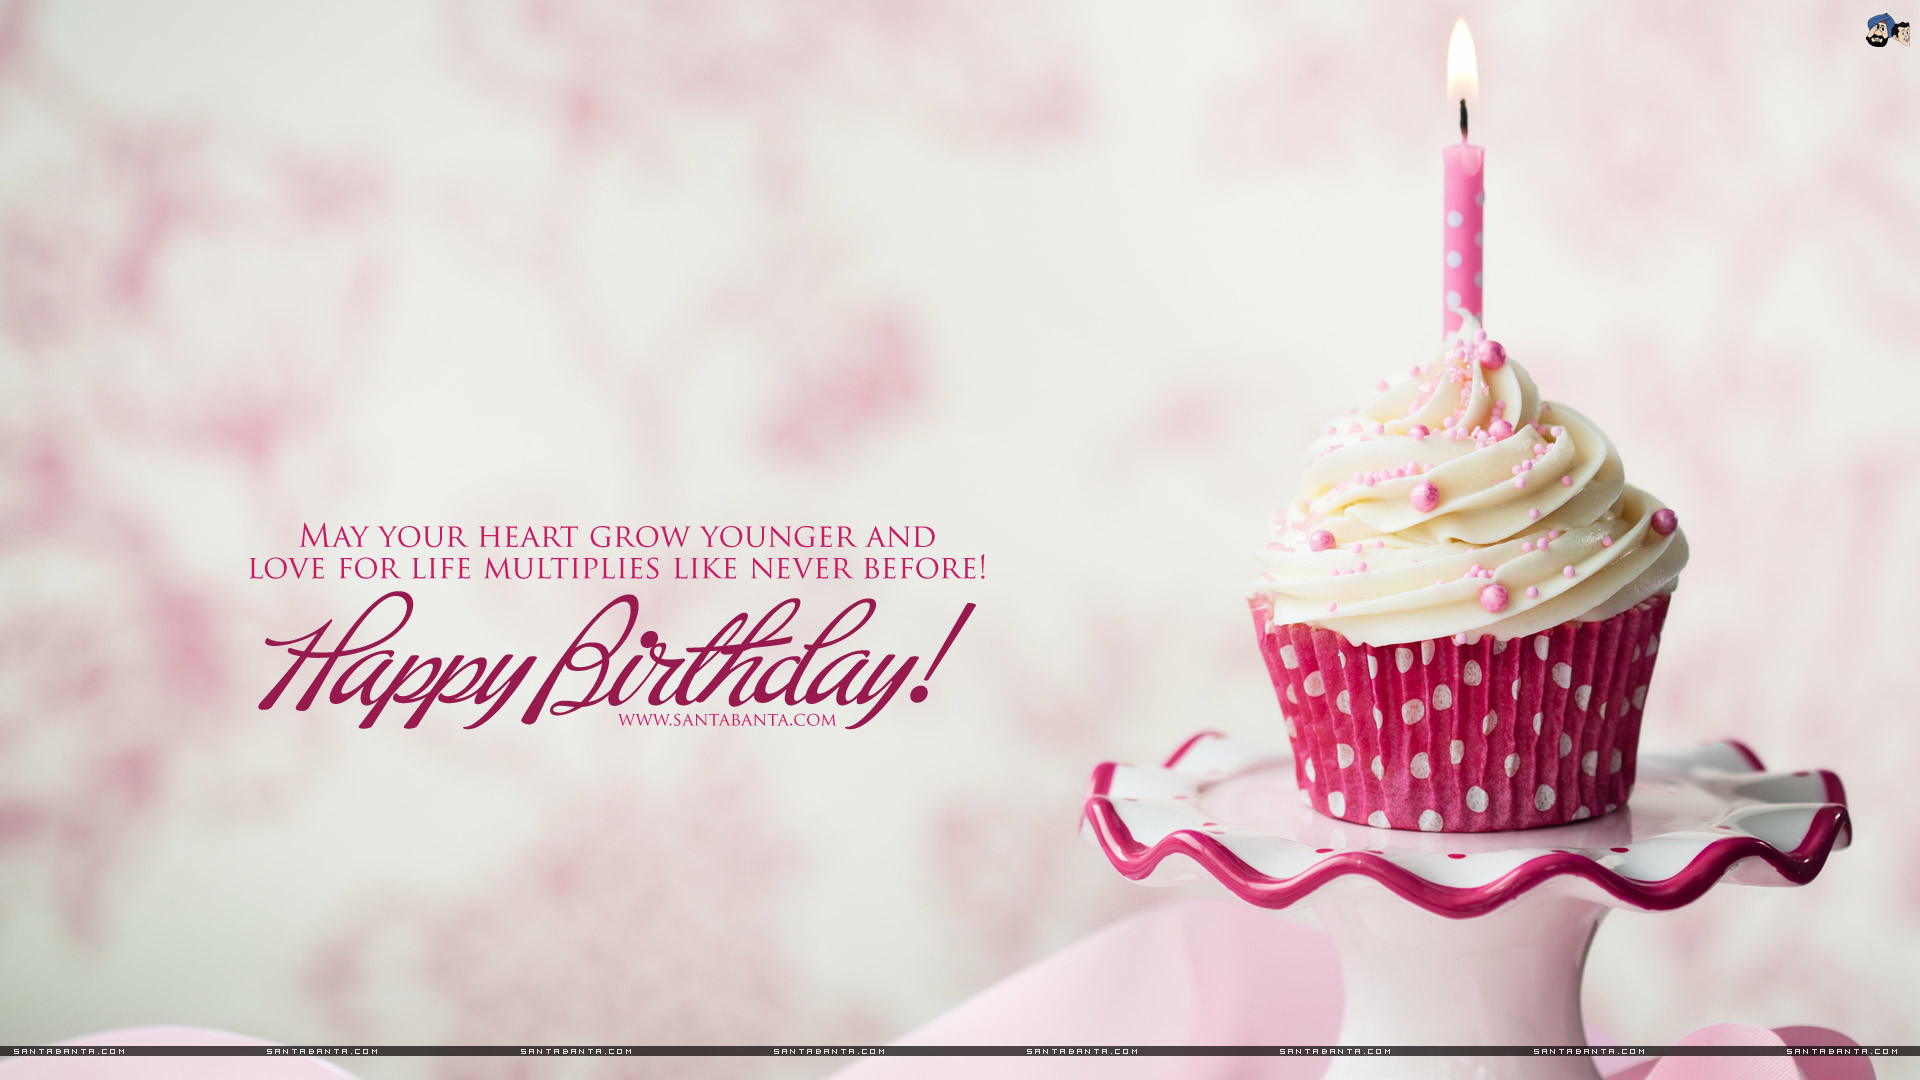 Happy birthday love wallpaper 53 images - Happy birthday card wallpaper ...